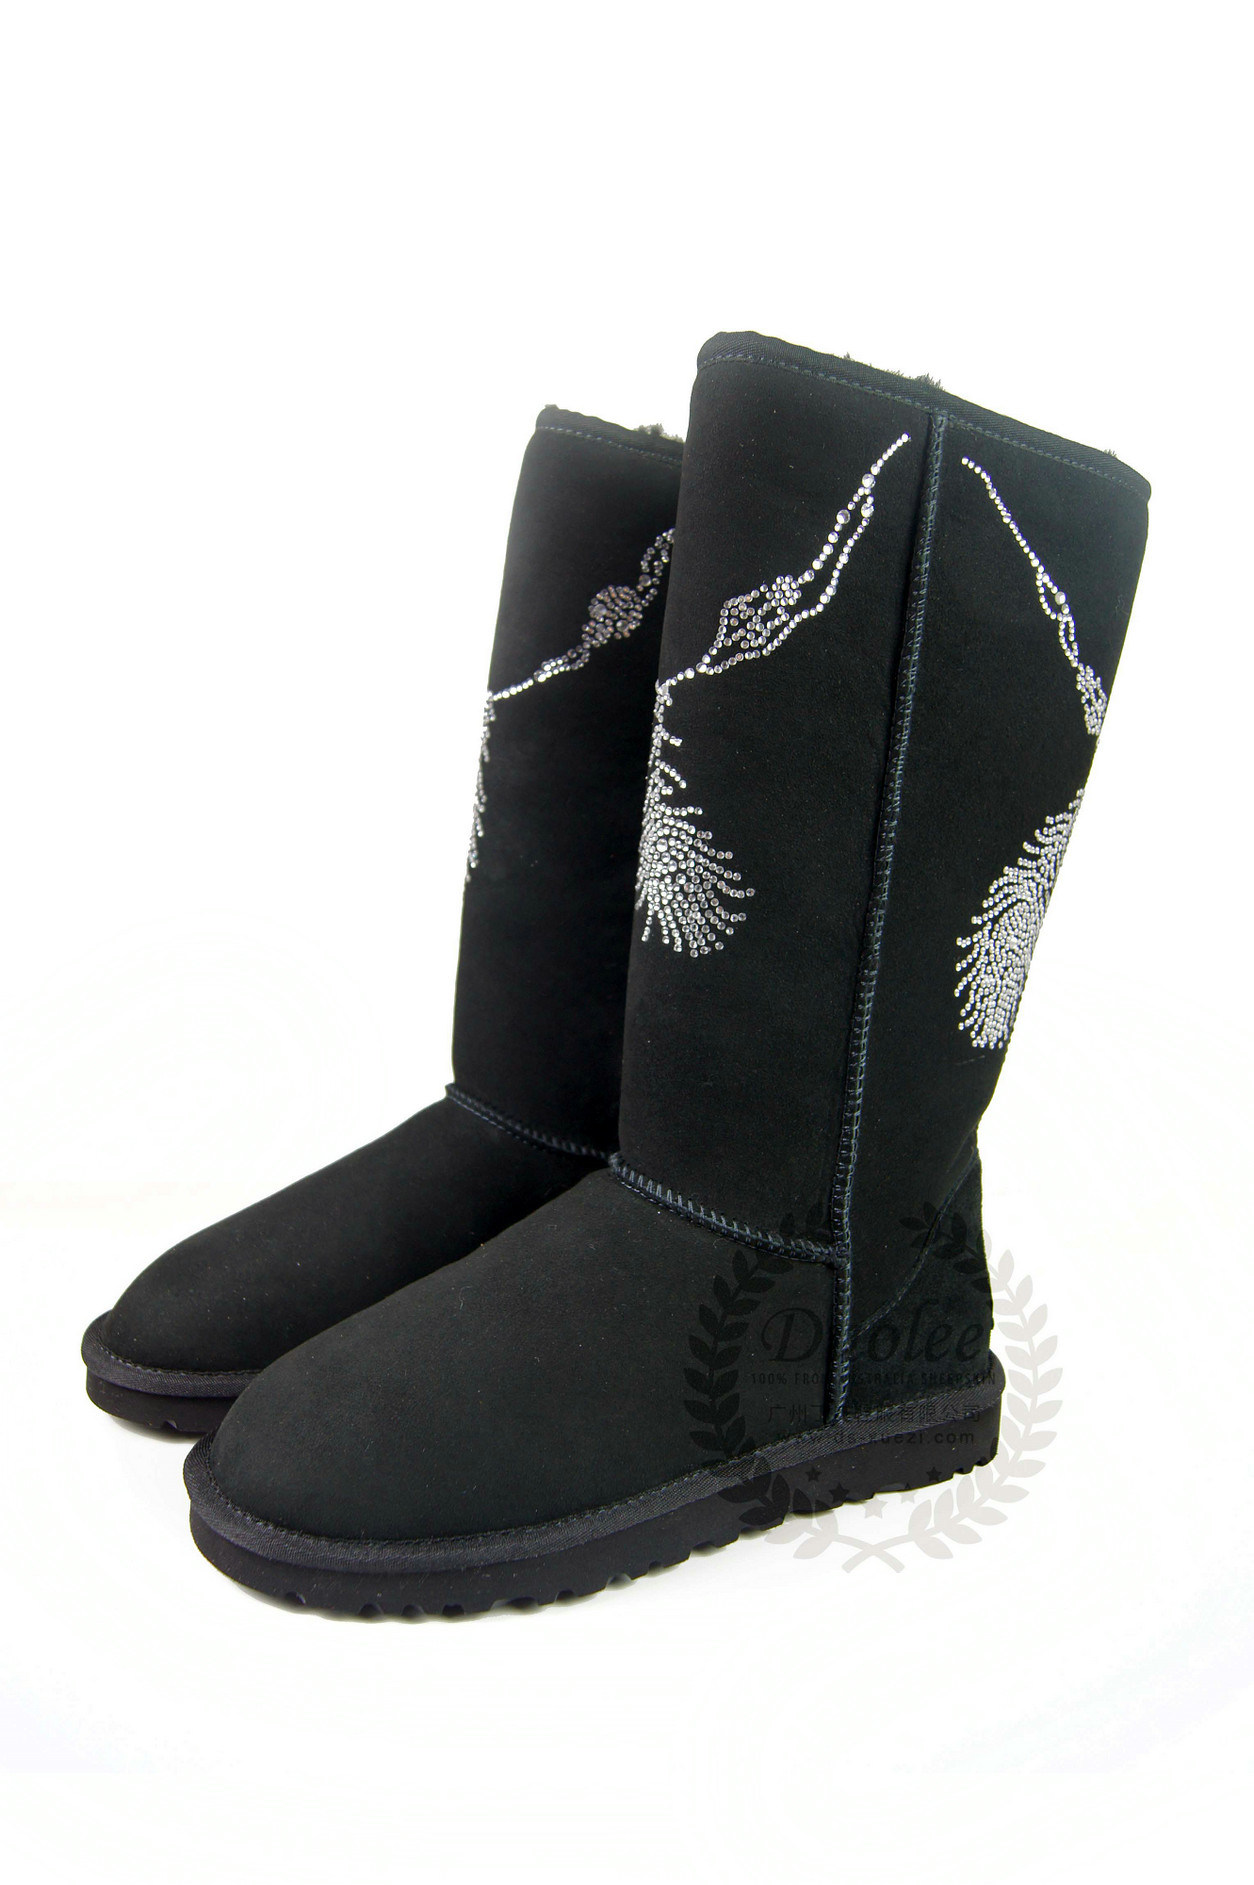 mens ugg boots new zealand